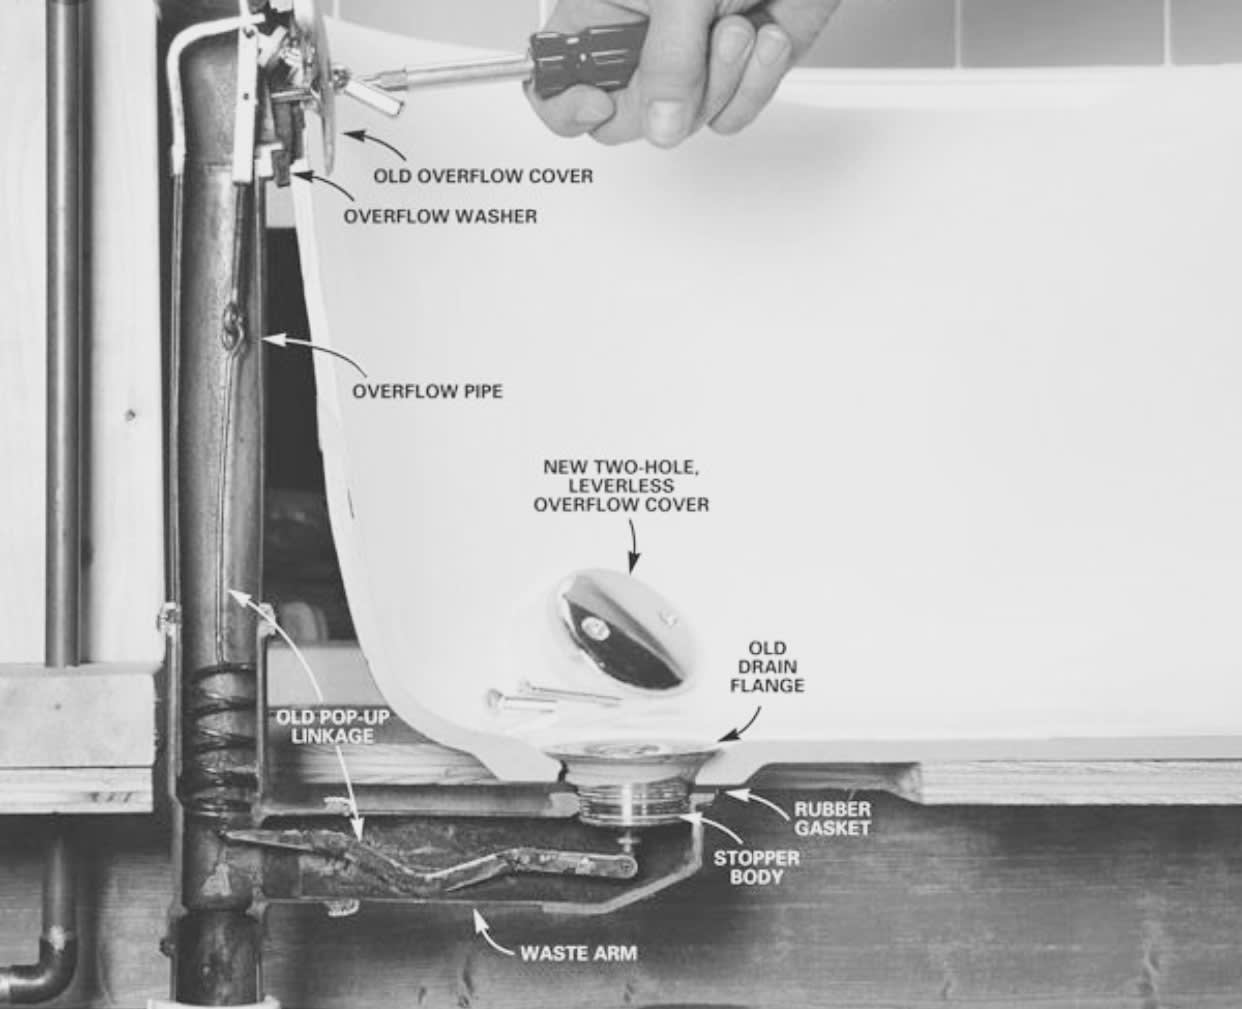 How To Fix A Bathtub Or Sink Pop Up Stopper Automatic Bathroom Wiring Diagrams For The Wire Coat Hanger Not Bend Easly I Had Tape It First Hope Helps